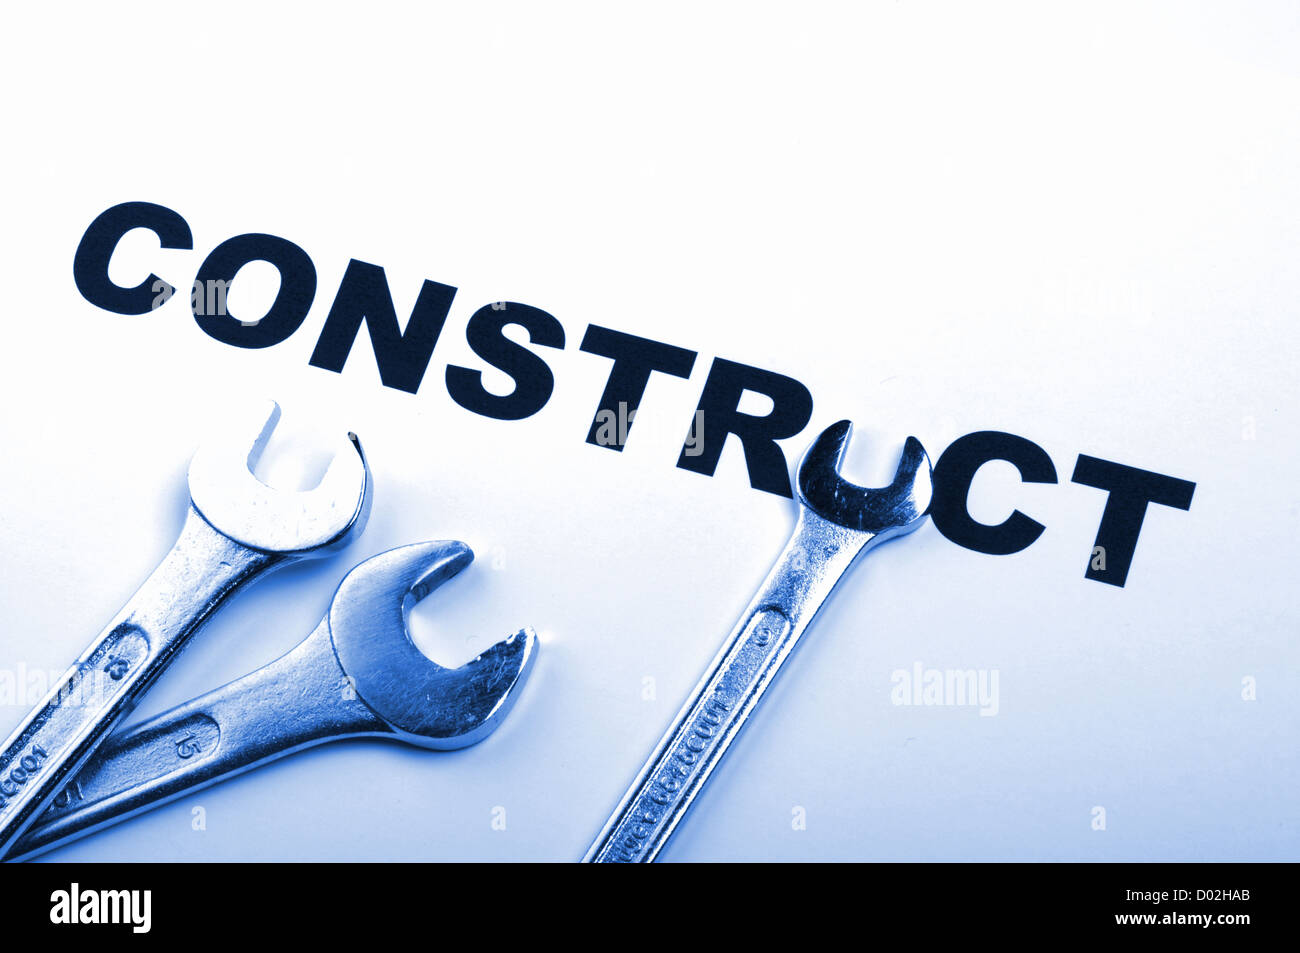 construct or construction concept with tool and word - Stock Image